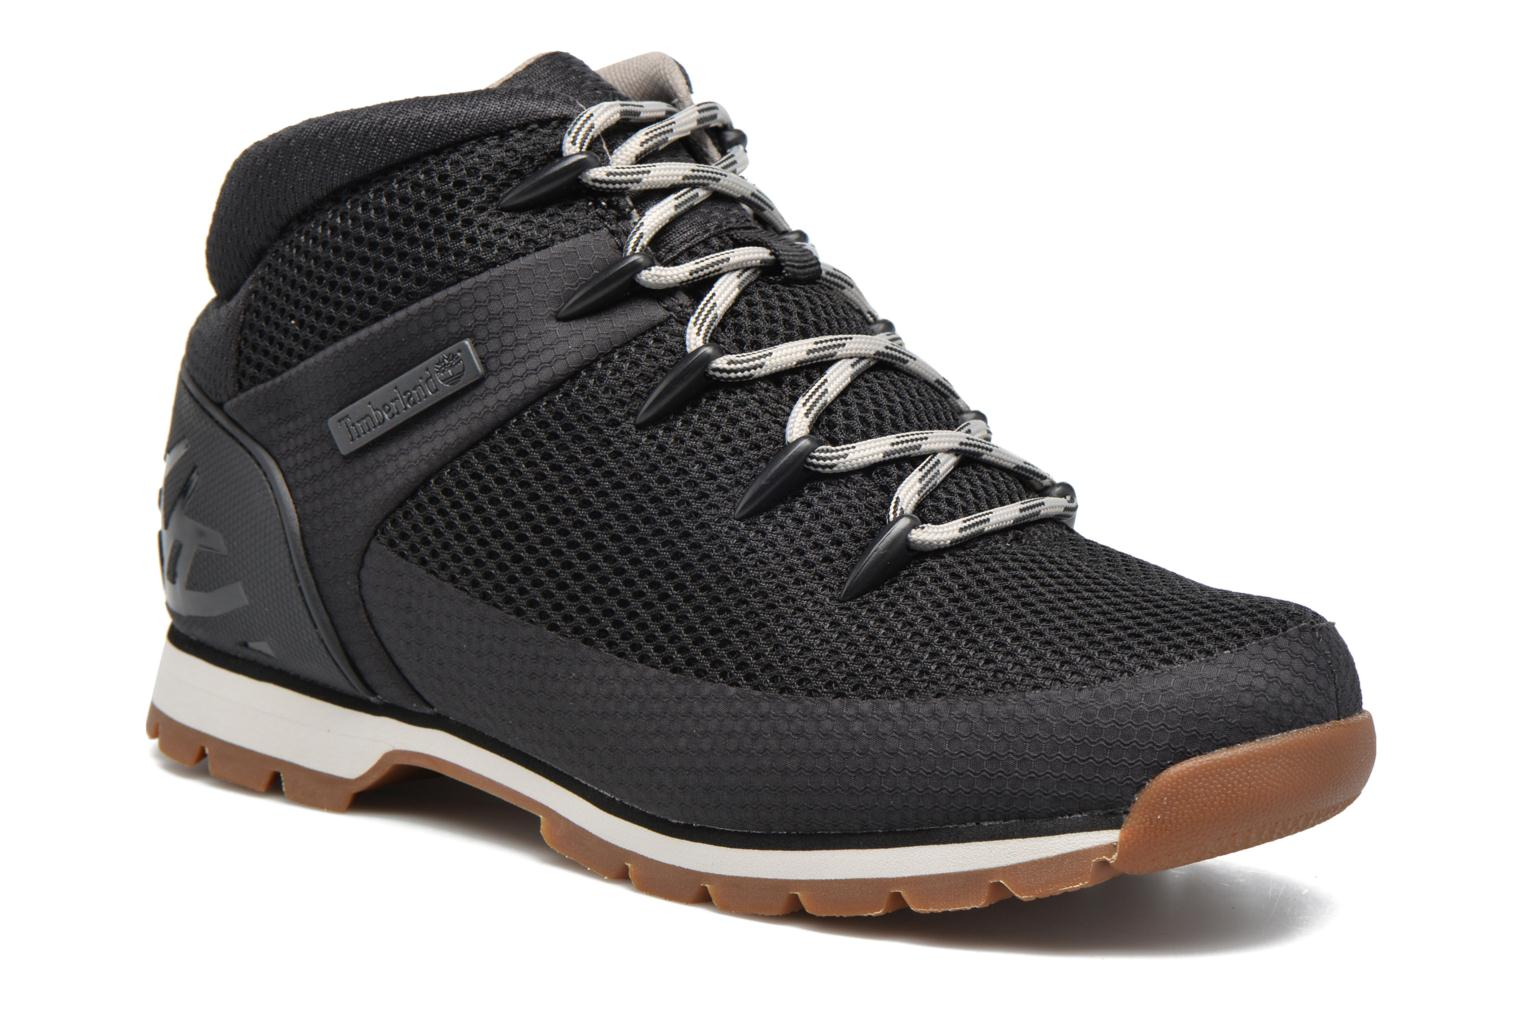 Chaussures Timberland Euro Sprint 40 noires Casual enfant sSuLp9Zds2